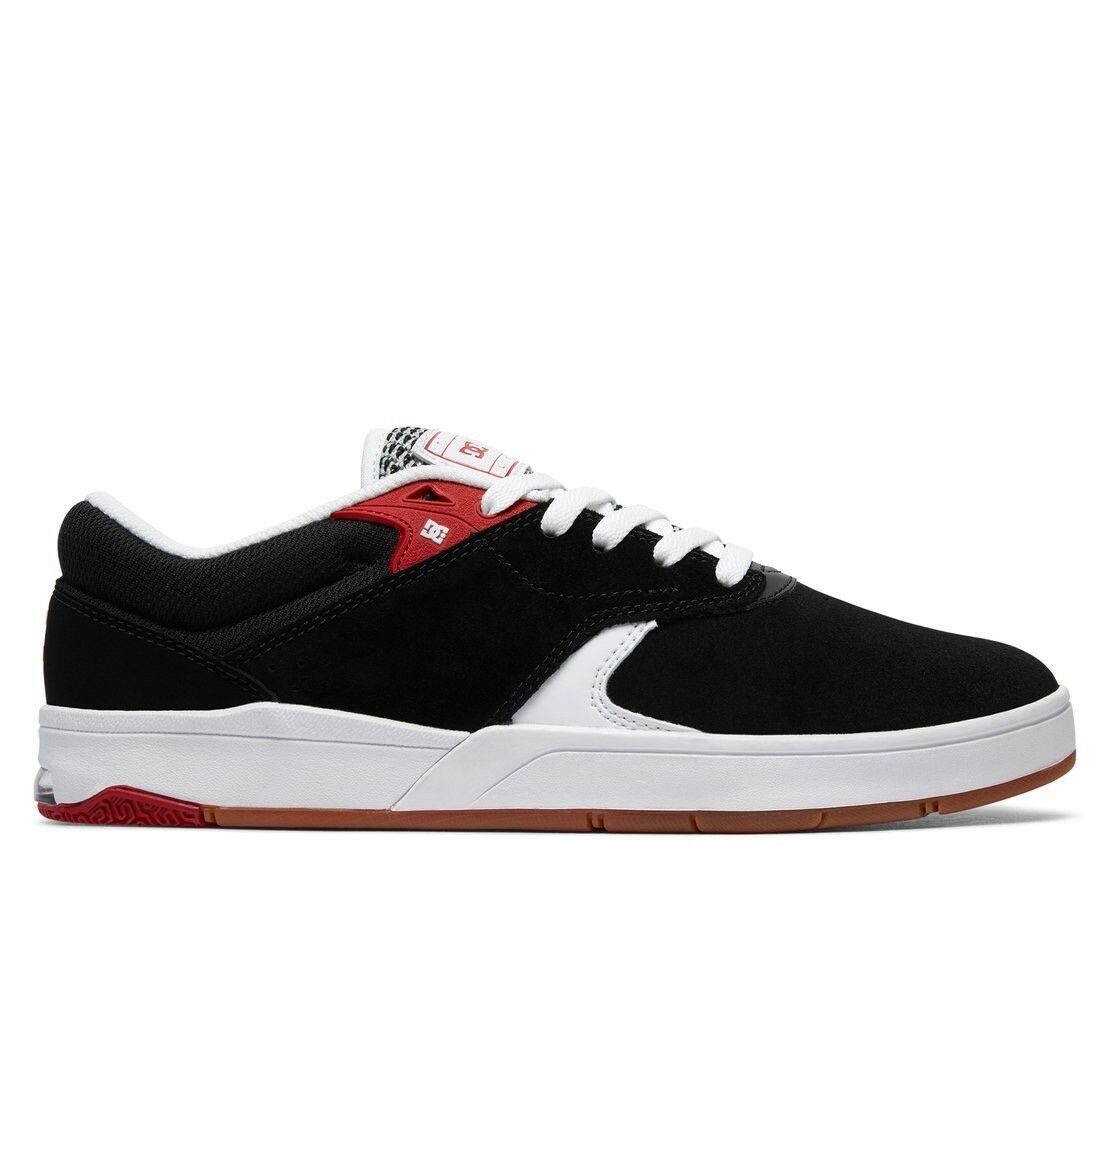 DC SHOES TIAGO S BLACK WHITE RED SKATE TRAINERS